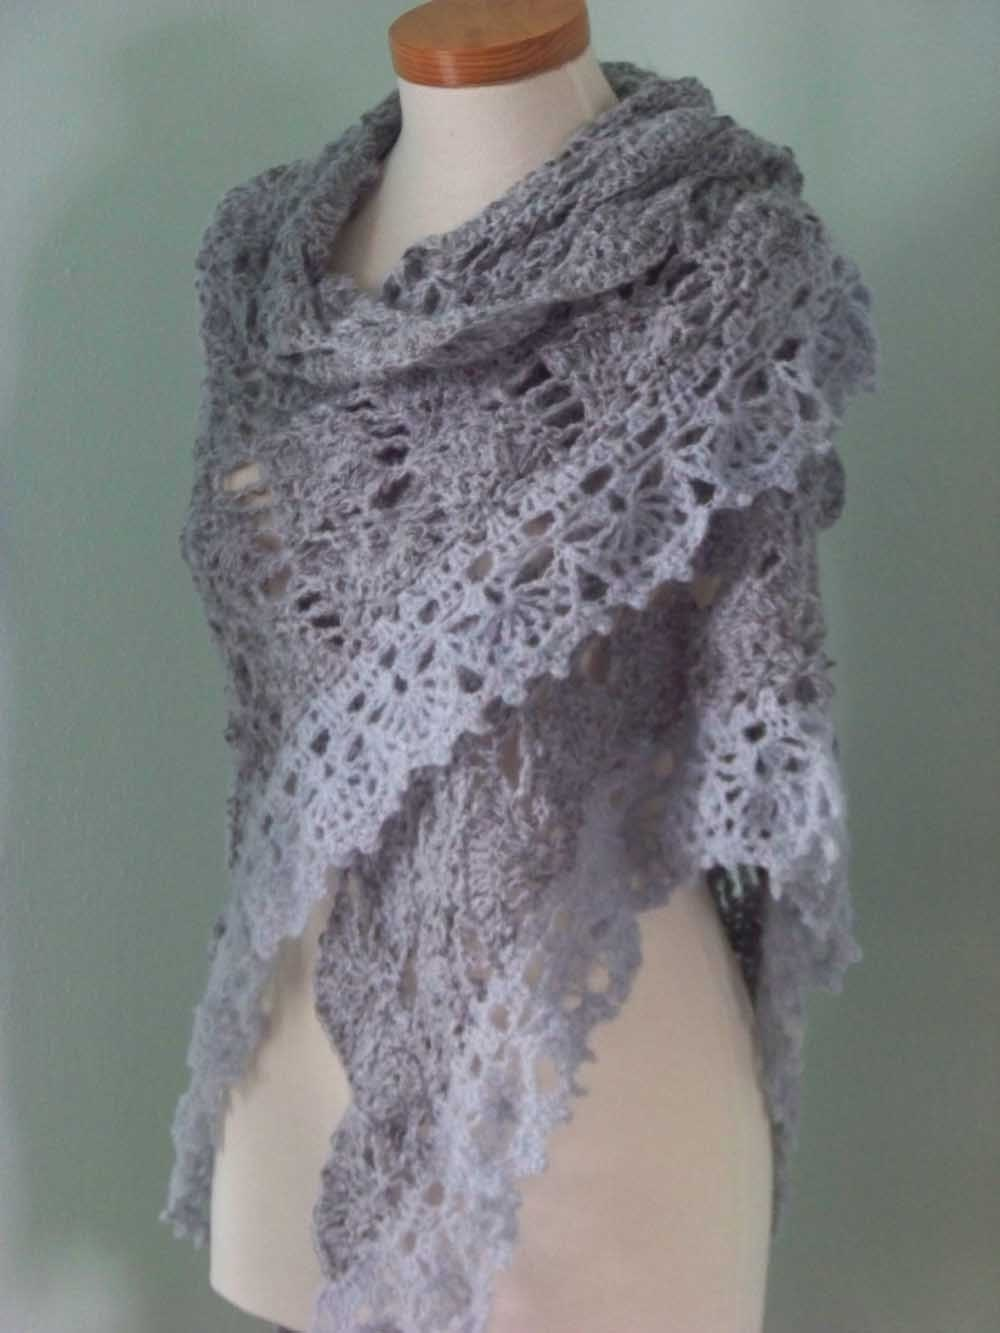 CROCHETED SHAWLS PATTERNS Crochet Projects